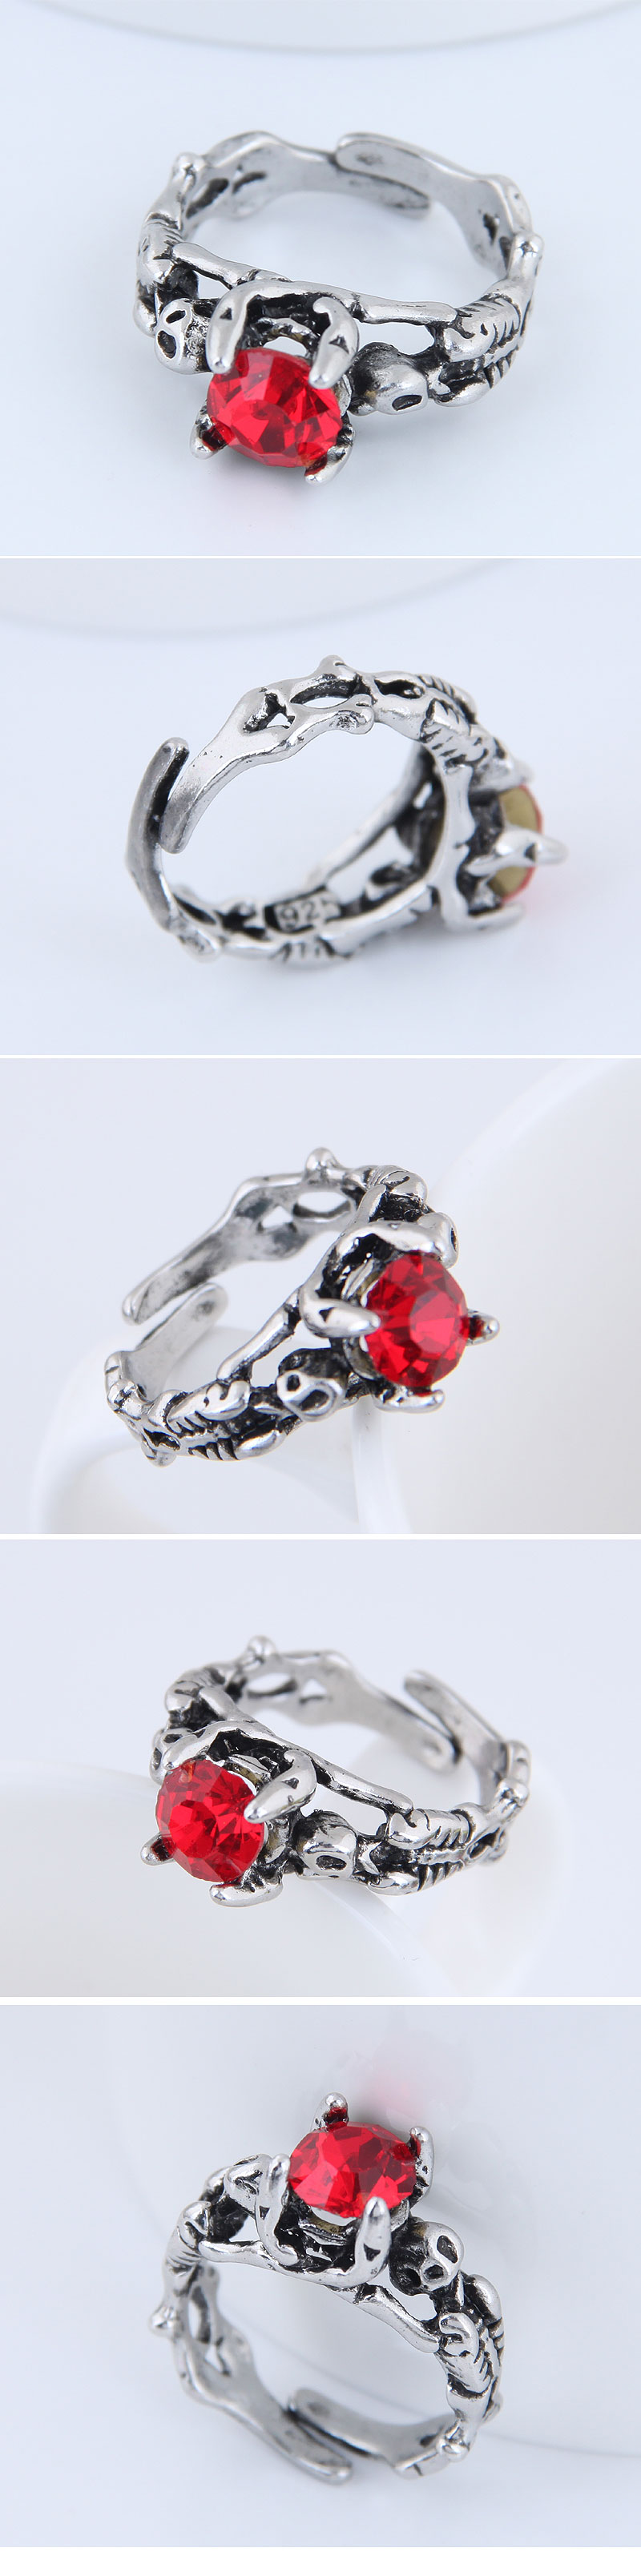 Yiwu jewelry wholesale fashion punk simple retro gem open ring NHSC206200